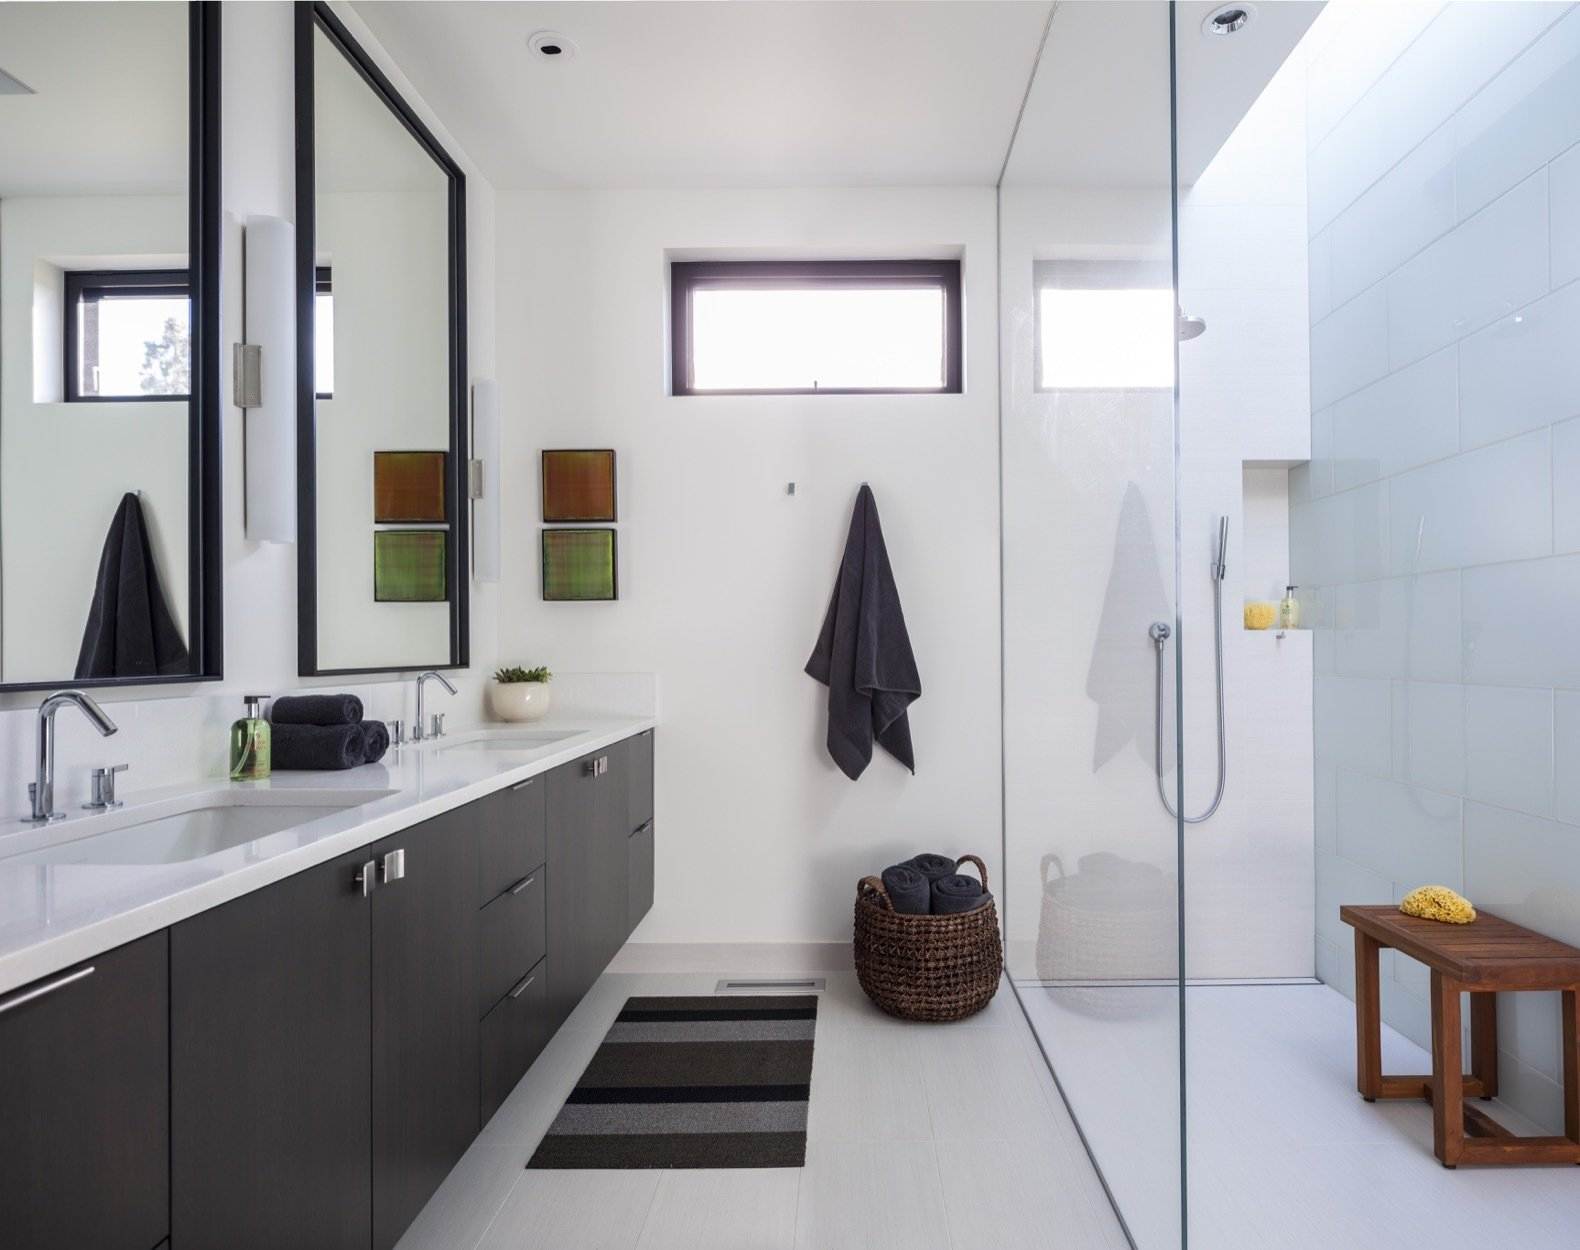 Bath, Porcelain Tile, Recessed, Undermount, Engineered Quartz, Rug, and Full Metalword porcelain tile covers the floor of the bathroom. This space is made bright and airy thanks to the mostly white color scheme and skylight placed over the shower.    Best Bath Undermount Full Engineered Quartz Photos from A High Desert Home Slides Open Like a Swiss Army Knife